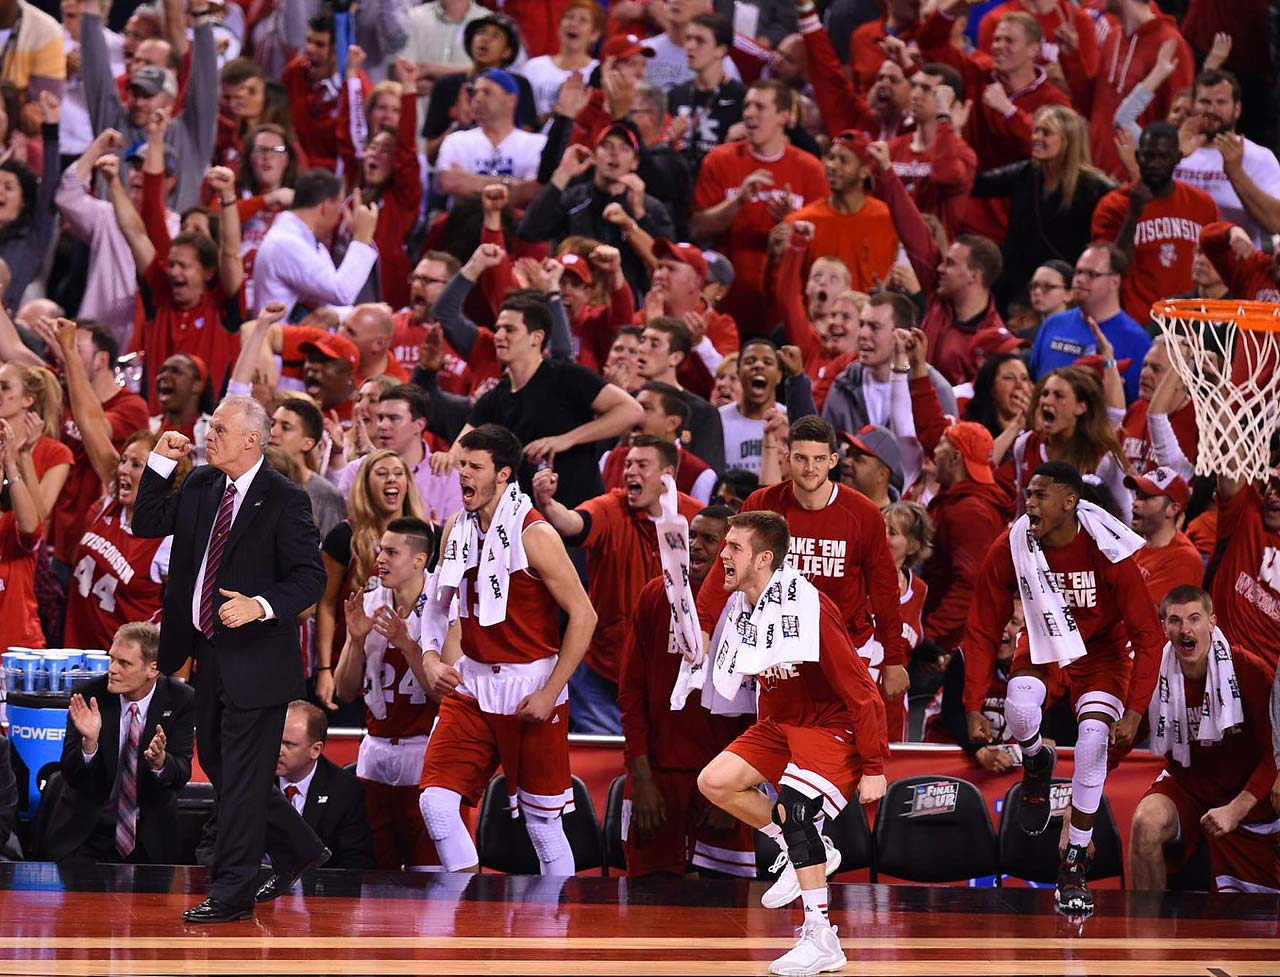 Wisconsin's bench celebrates a big play during Monday's title game. The Badgers led by as many as 9 points in the second half before falling 68-63.